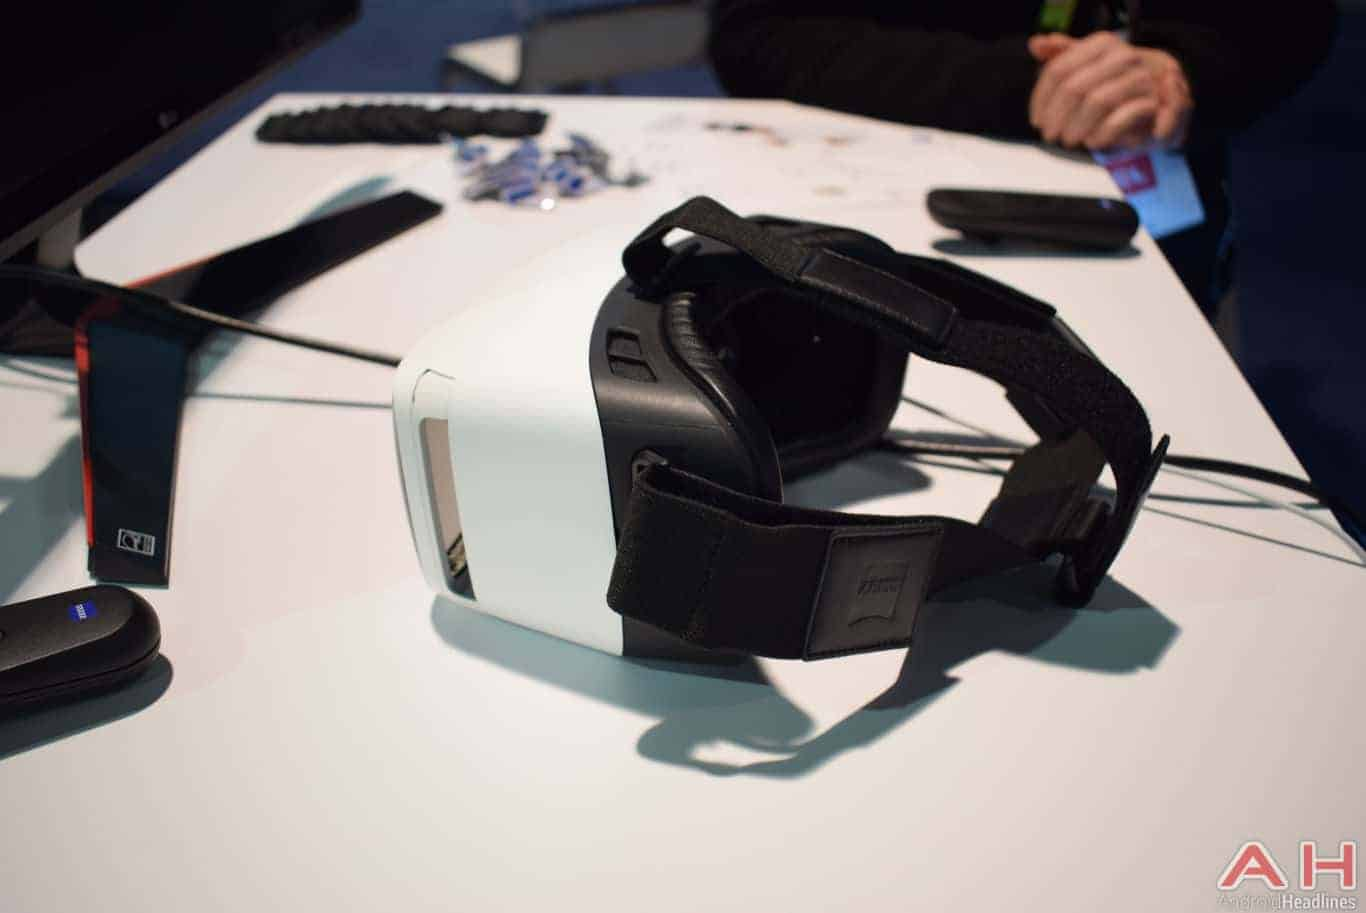 ZEISS VR ONE CONNECT CES 2018 AH 6